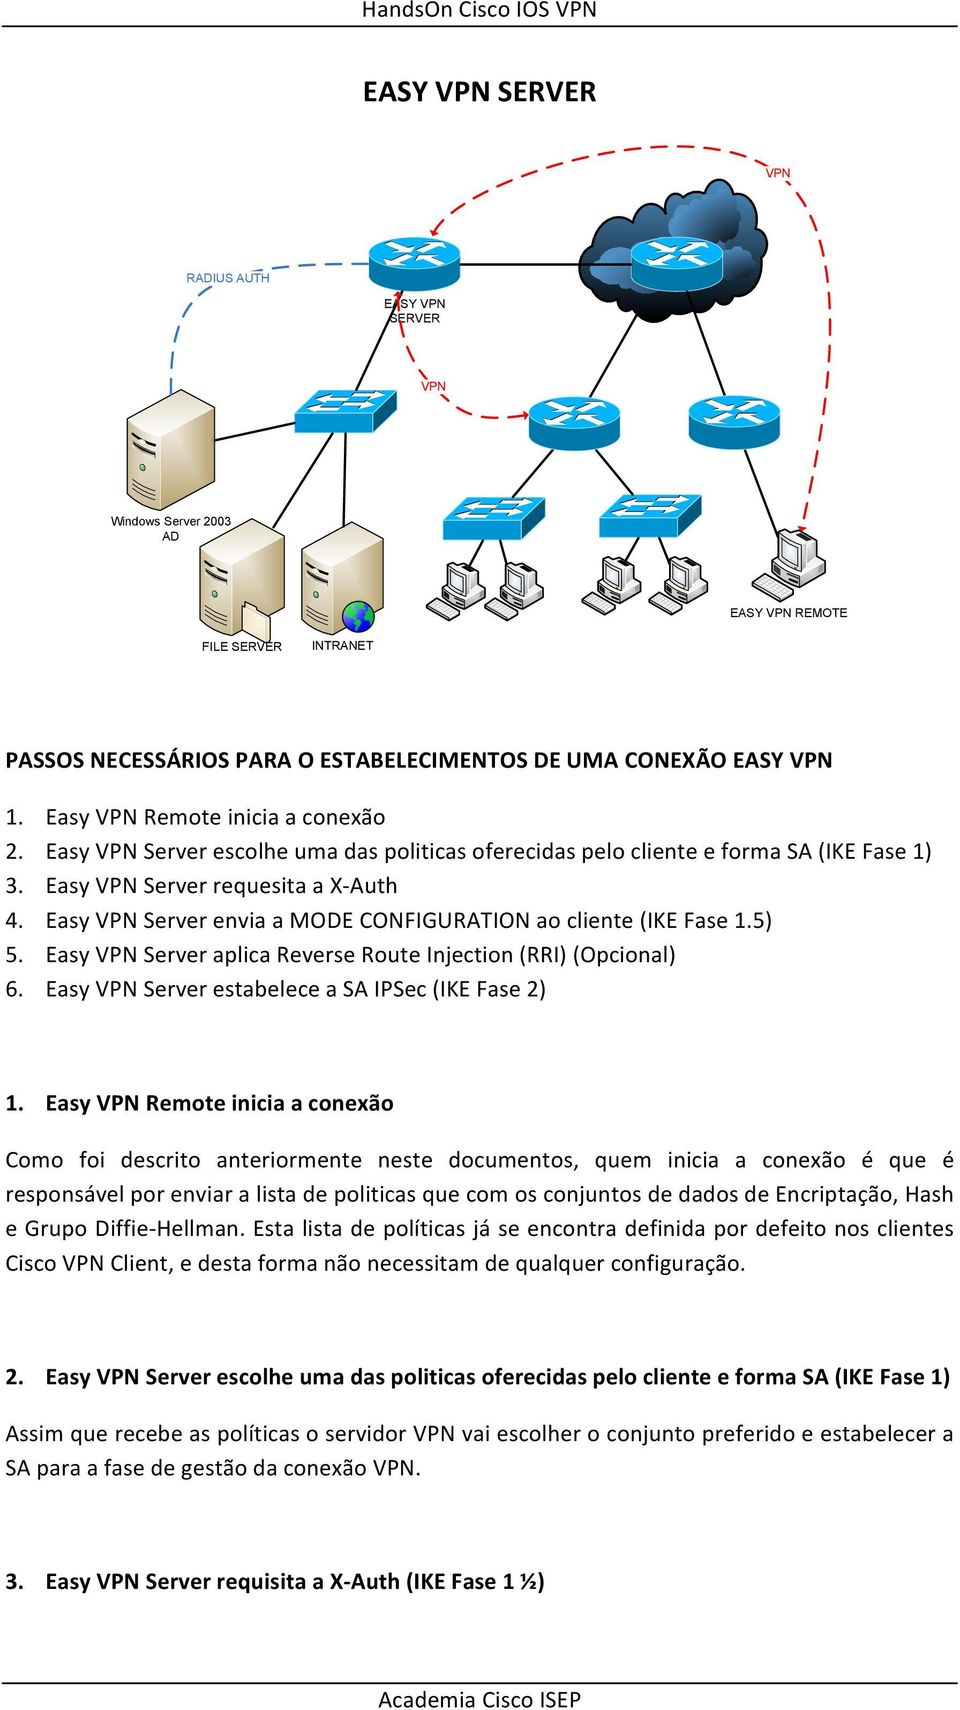 Easy VPN Server envia a MODE CONFIGURATION ao cliente (IKE Fase 1.5) 5. Easy VPN Server aplica Reverse Route Injection (RRI) (Opcional) 6. Easy VPN Server estabelece a SA IPSec (IKE Fase 2) 1.